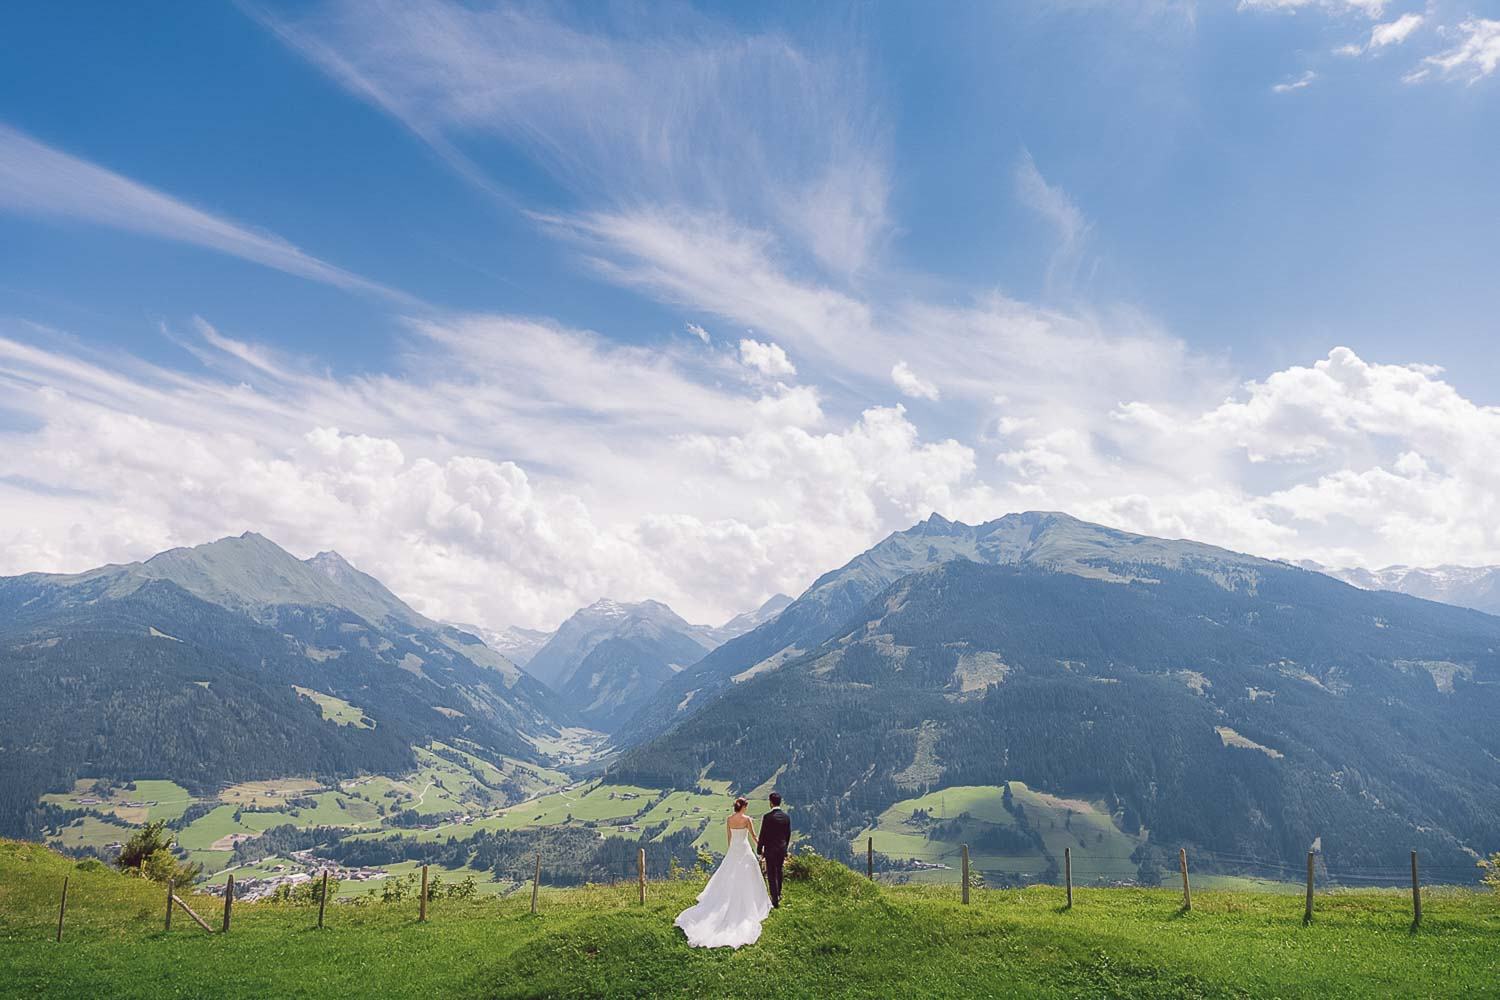 Feather_and_birch_Weddingphotography_internationalweddings_mudgeeweddingphotographer-2.jpg